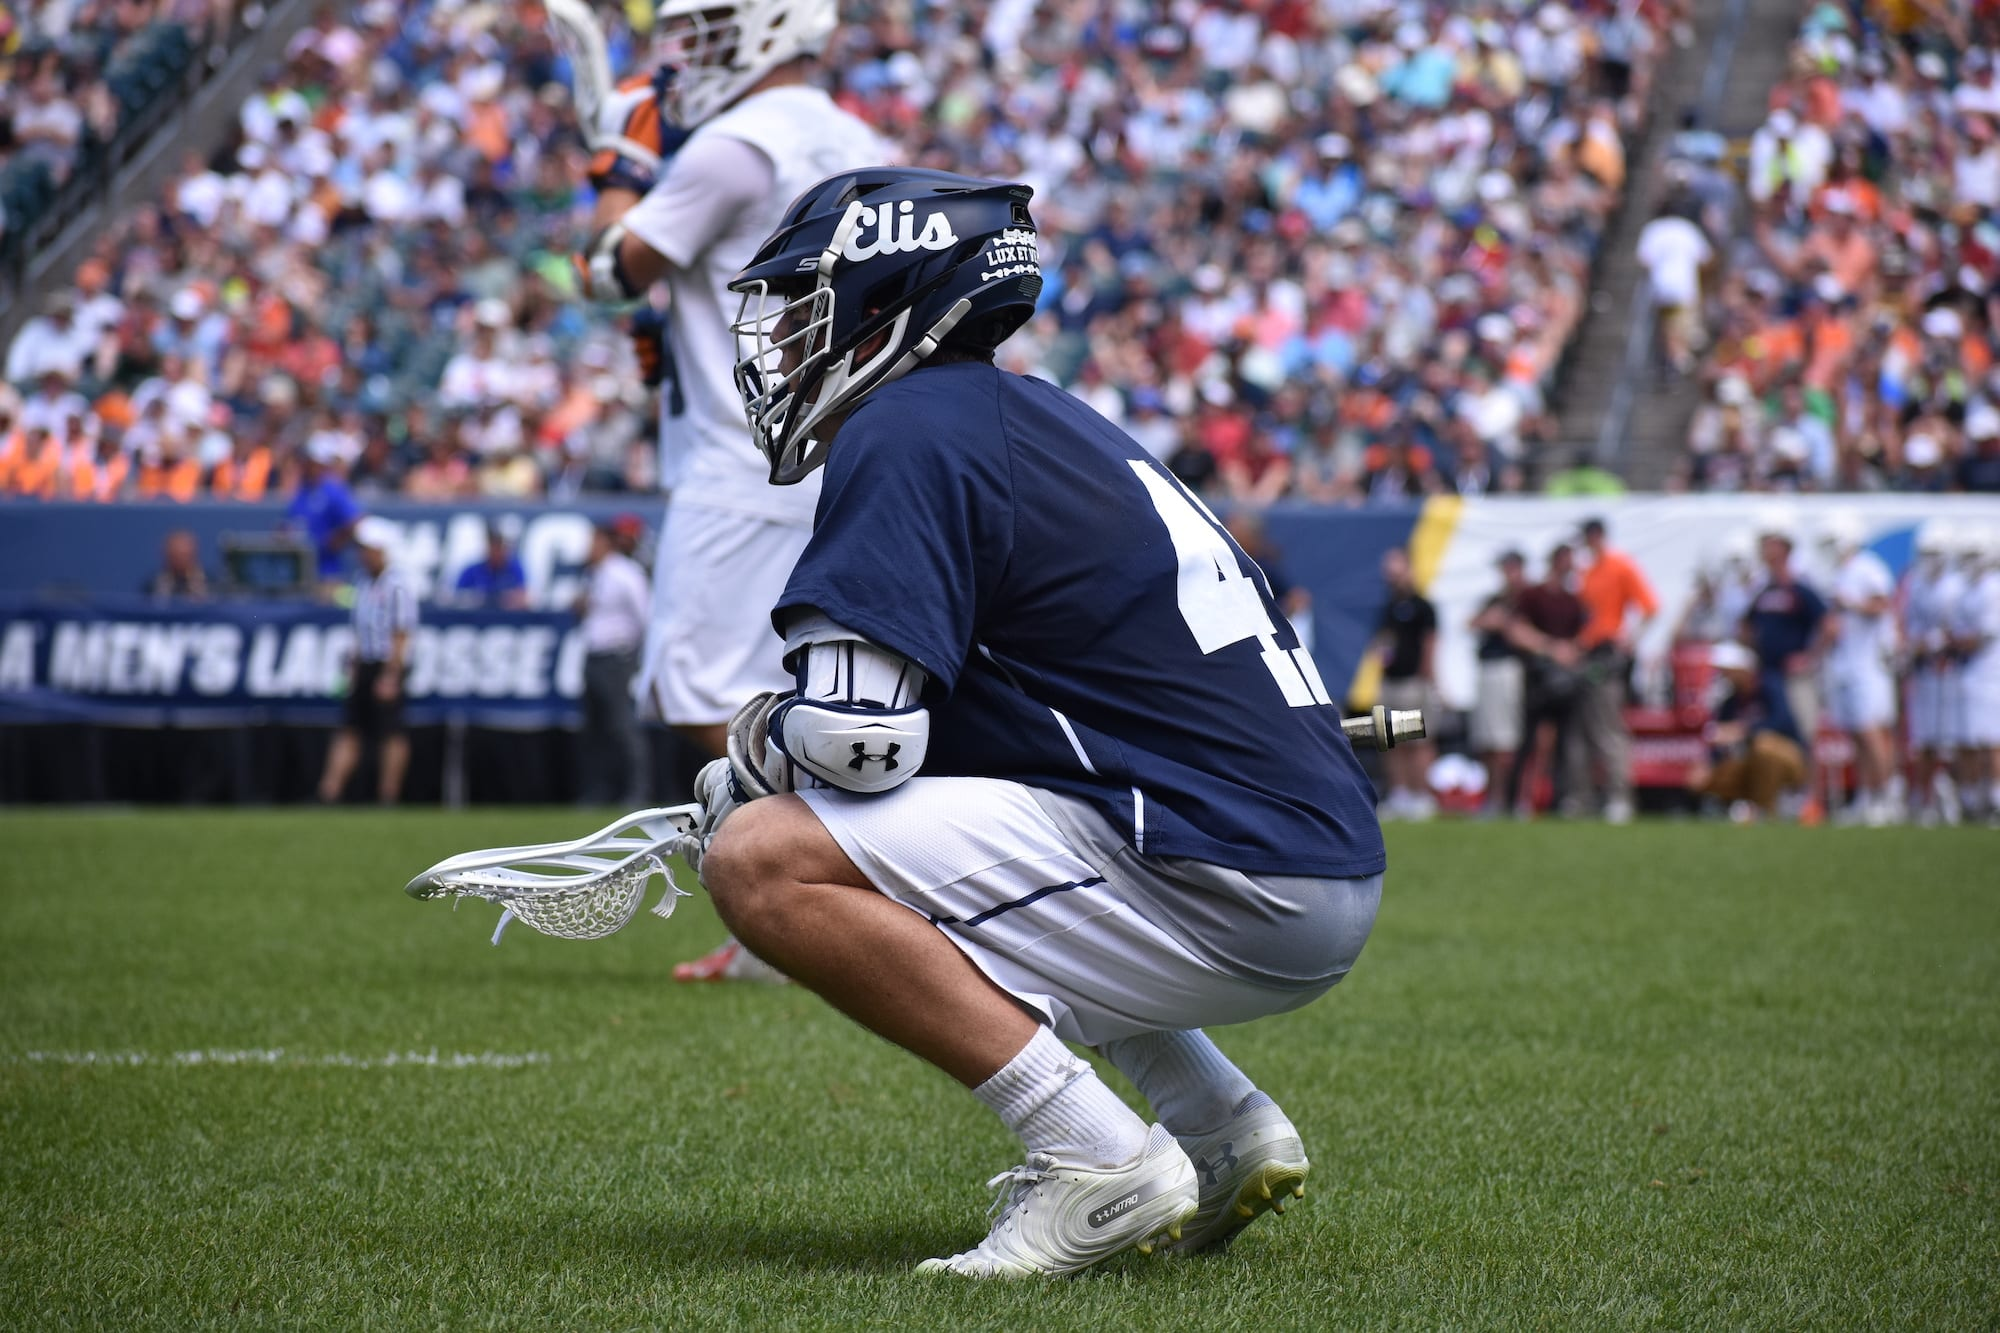 virginia yale 2019 ncaa d1 college lacrosse national championship